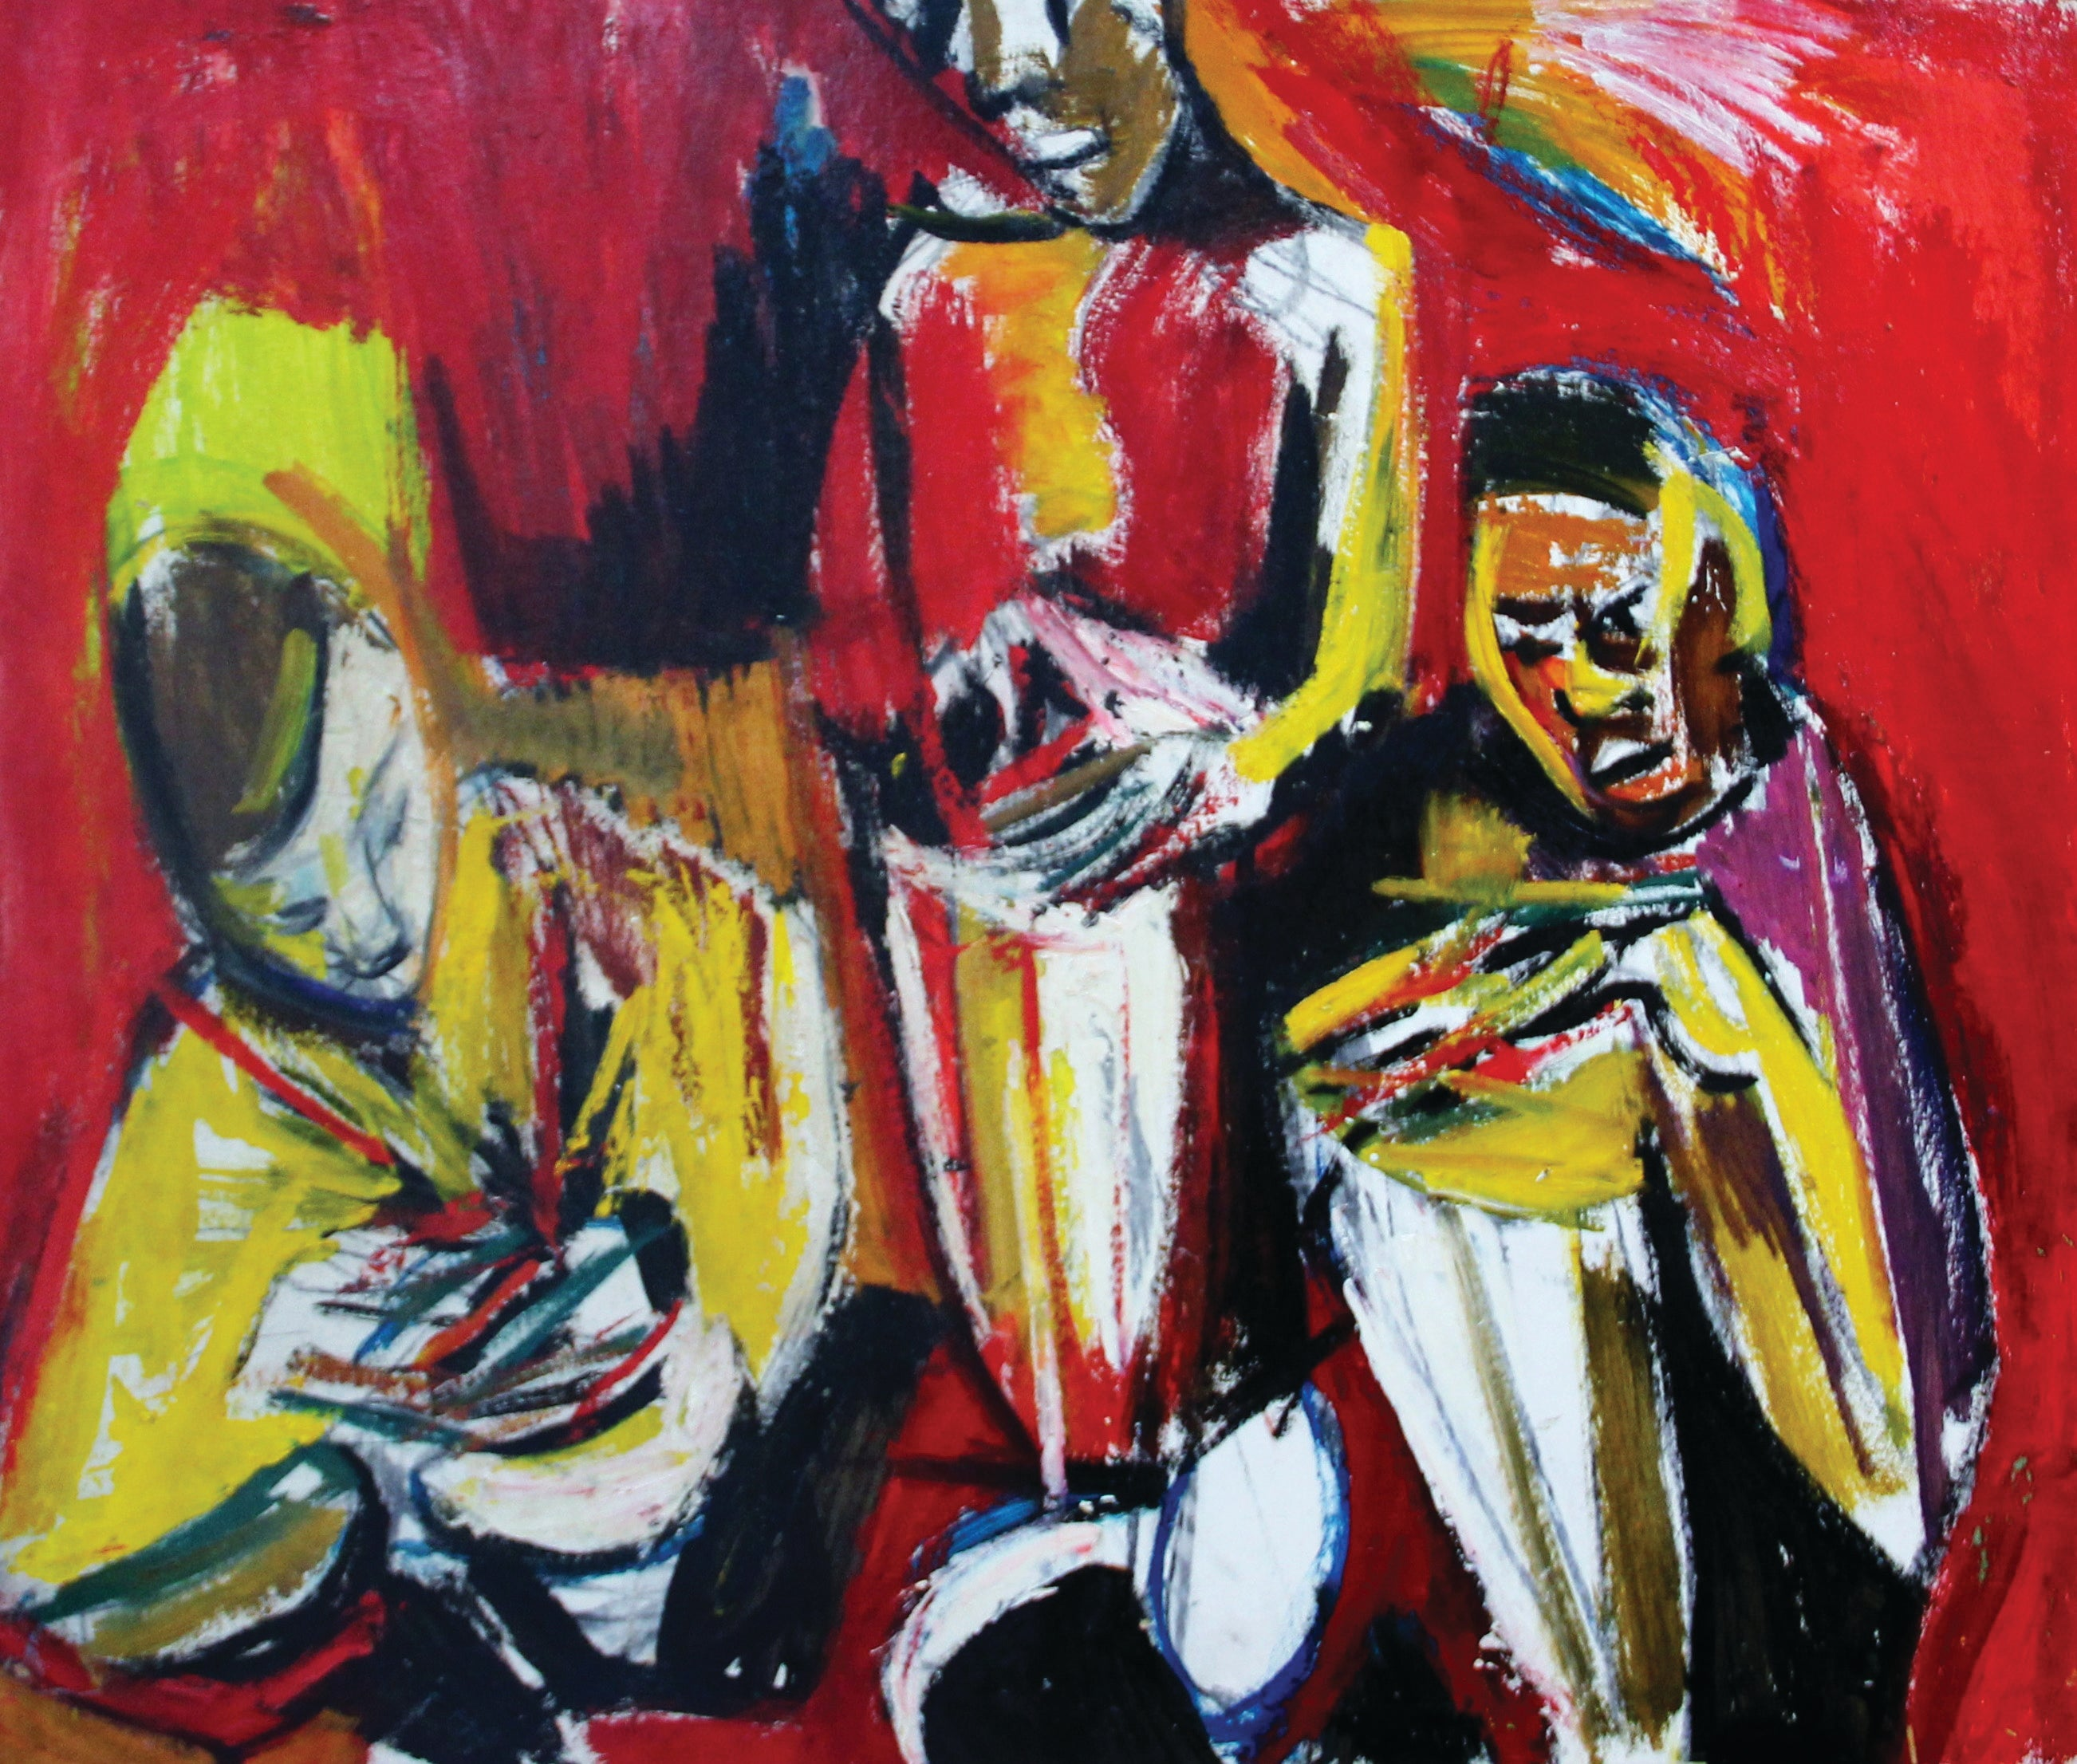 Drums, Expressionist Group Portrait of Three Musicians, African American Art